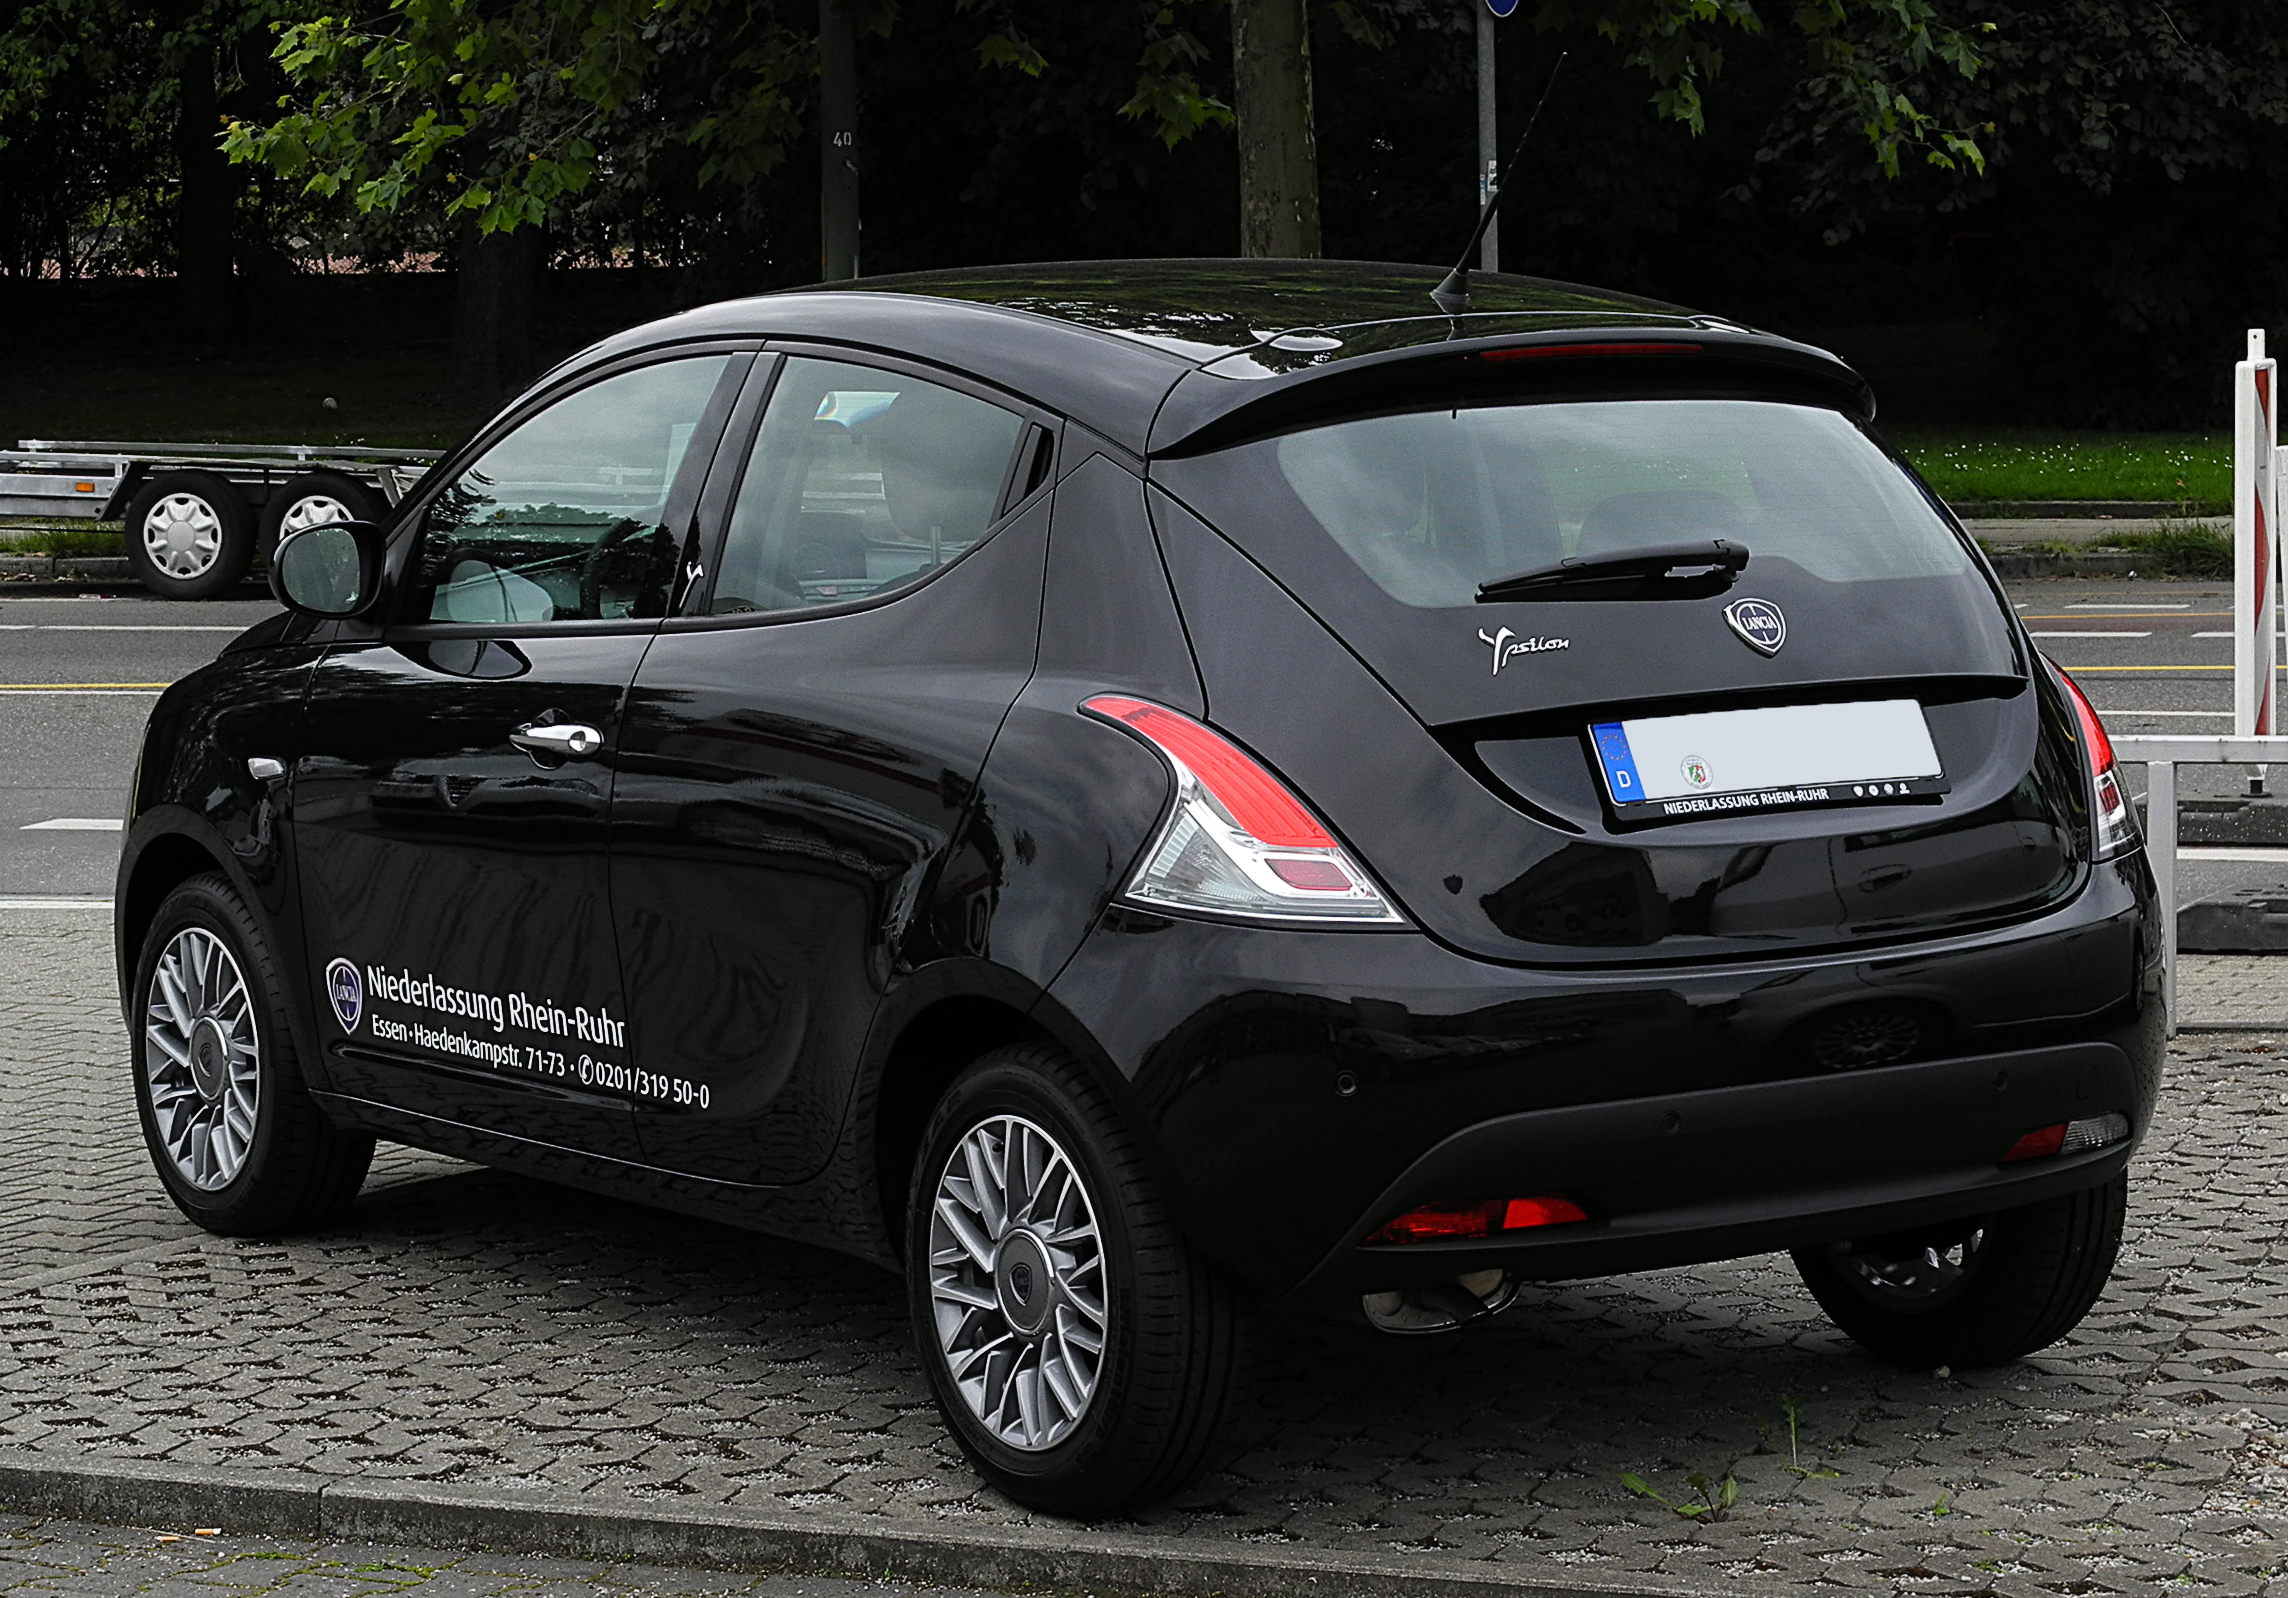 http://www.ewallpapers.eu/sites/default/files/lancia-ypsilon-62693-5661485.jpg